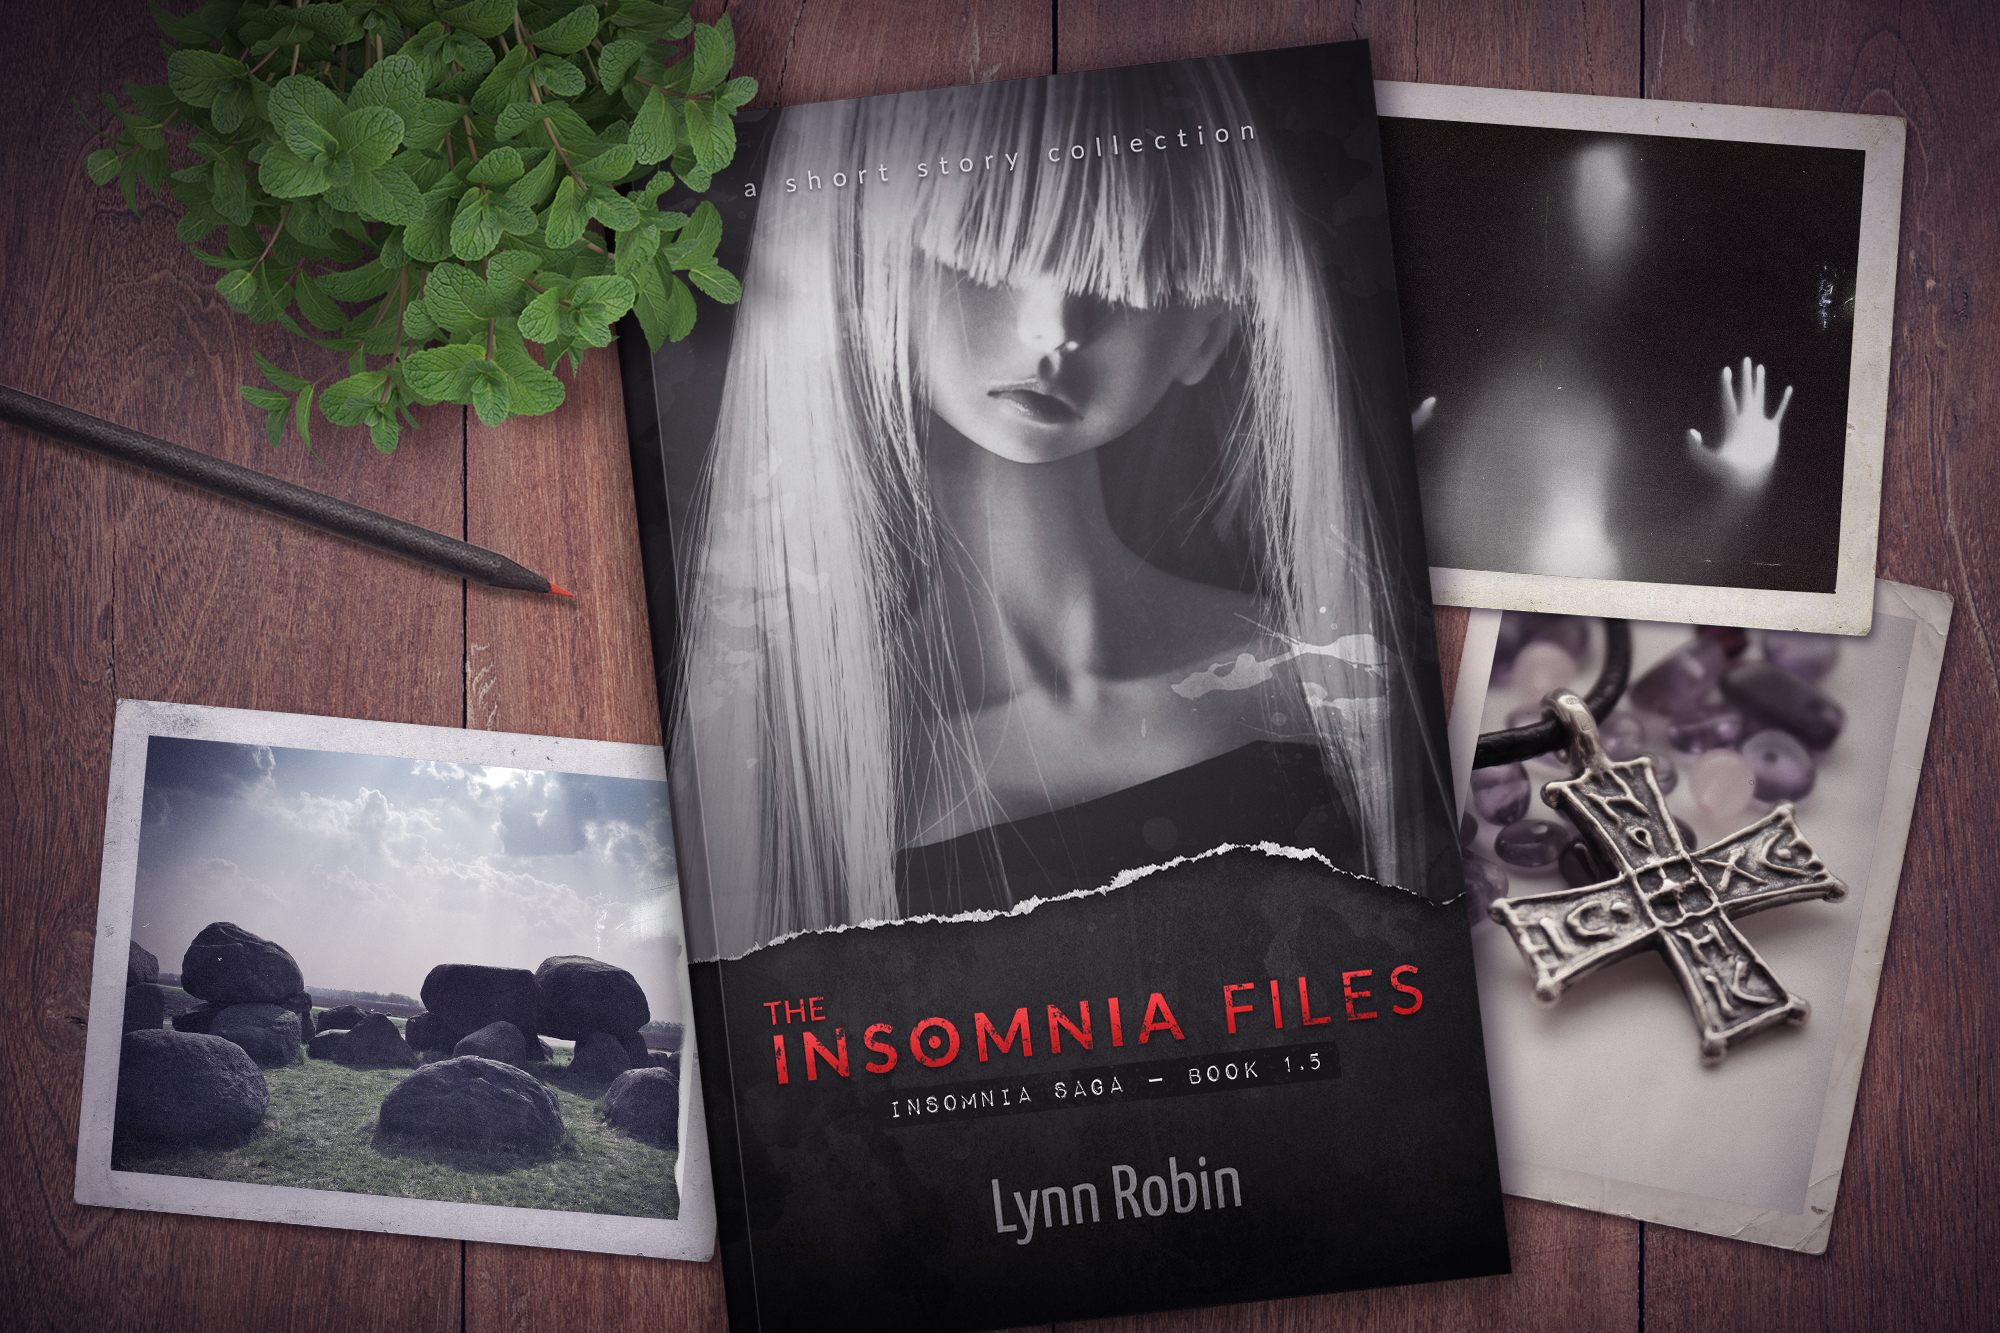 NEW RELEASE | OUT NOW: The Insomnia Files (Insomnia Saga 1.5) — eBook edition